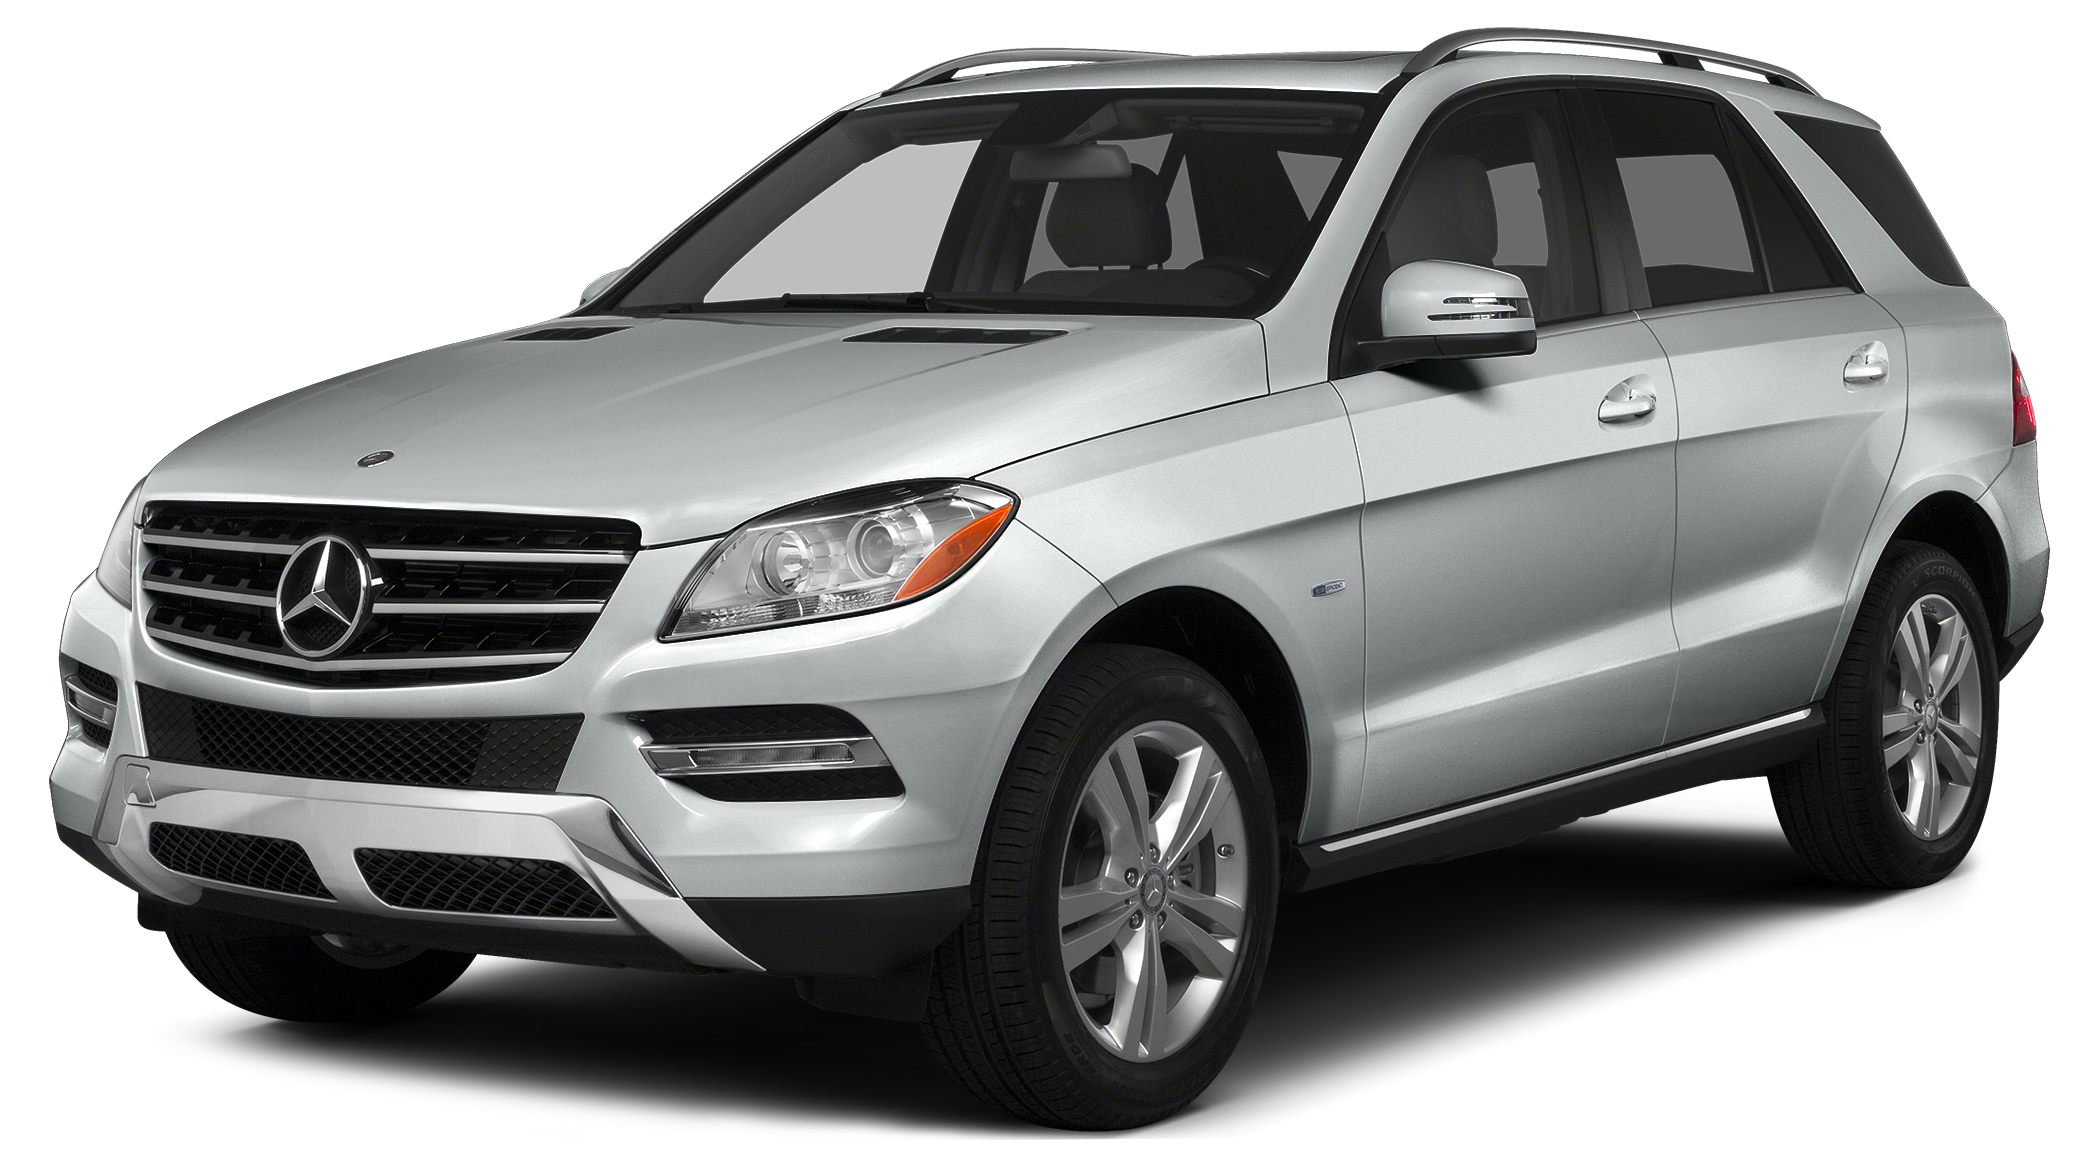 2013 MERCEDES M-Class ML350 4MATIC We sold this one owner 2013 ML350 4 Matic suv new This ML was